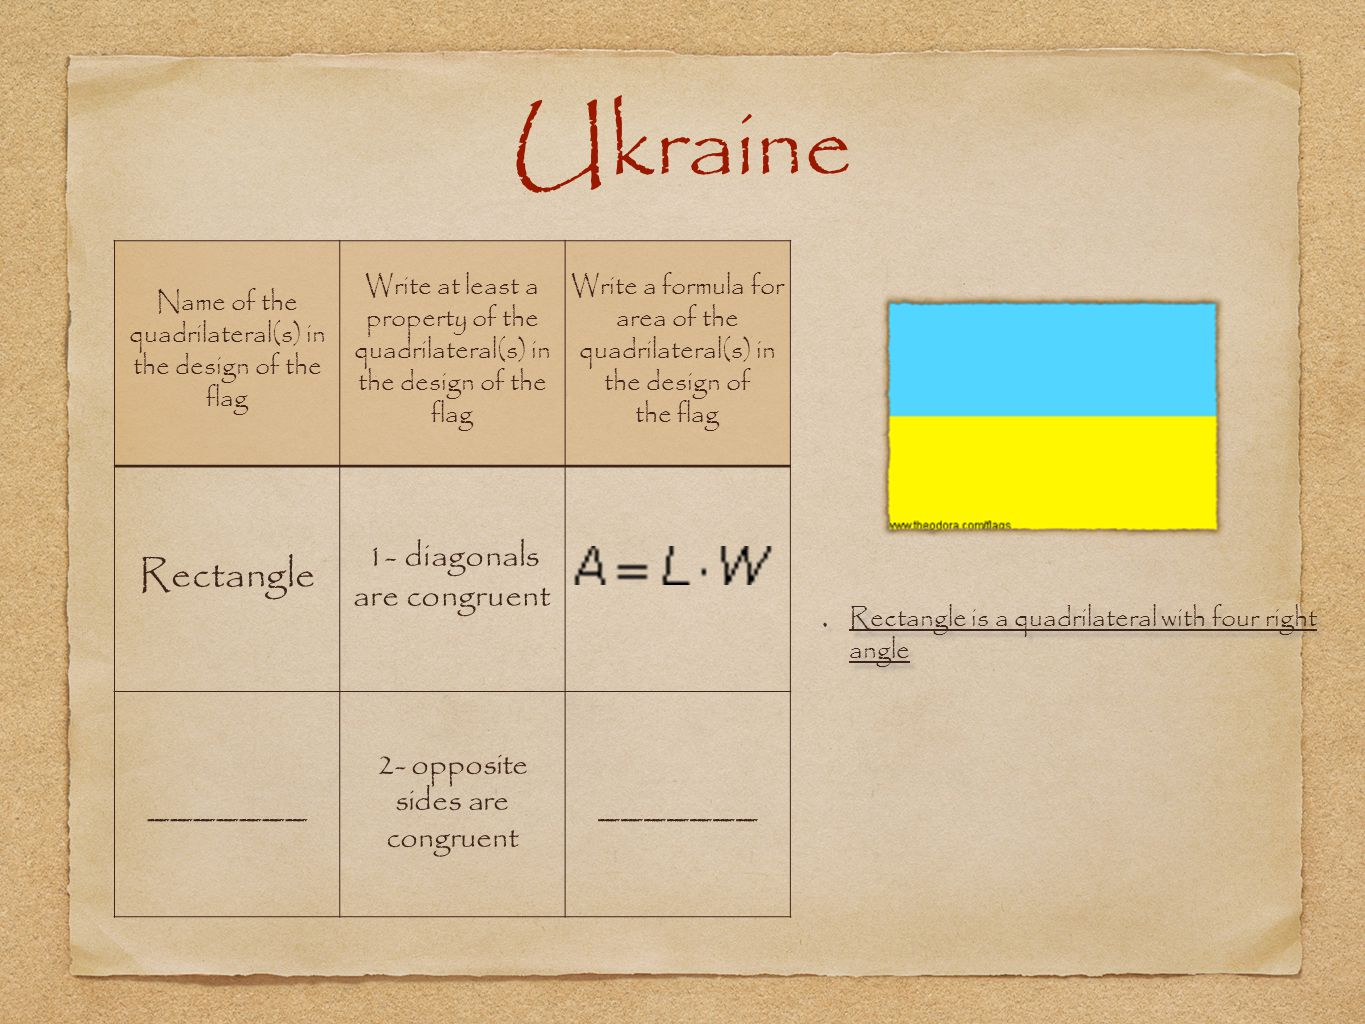 Ukraine Rectangle _______ 1- diagonals are congruent